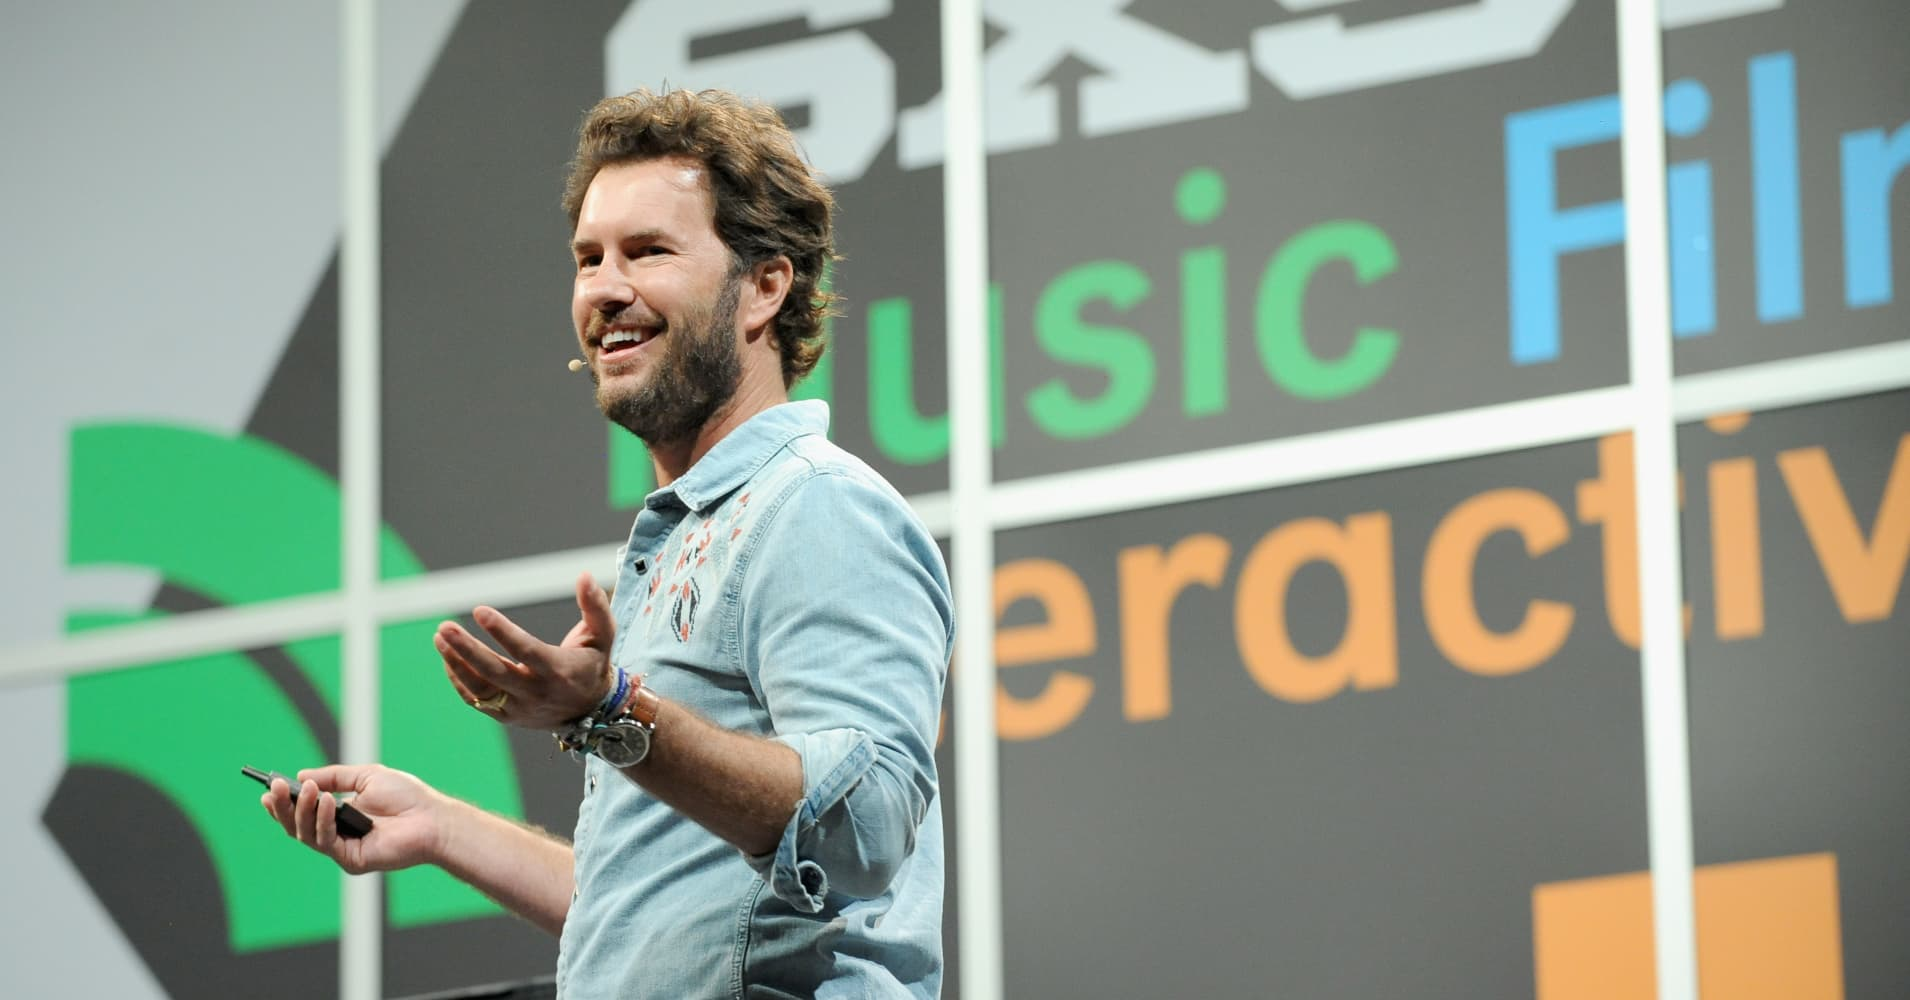 Blake Mycoskie, founder and Chief Shoe Giver of Toms Shoes